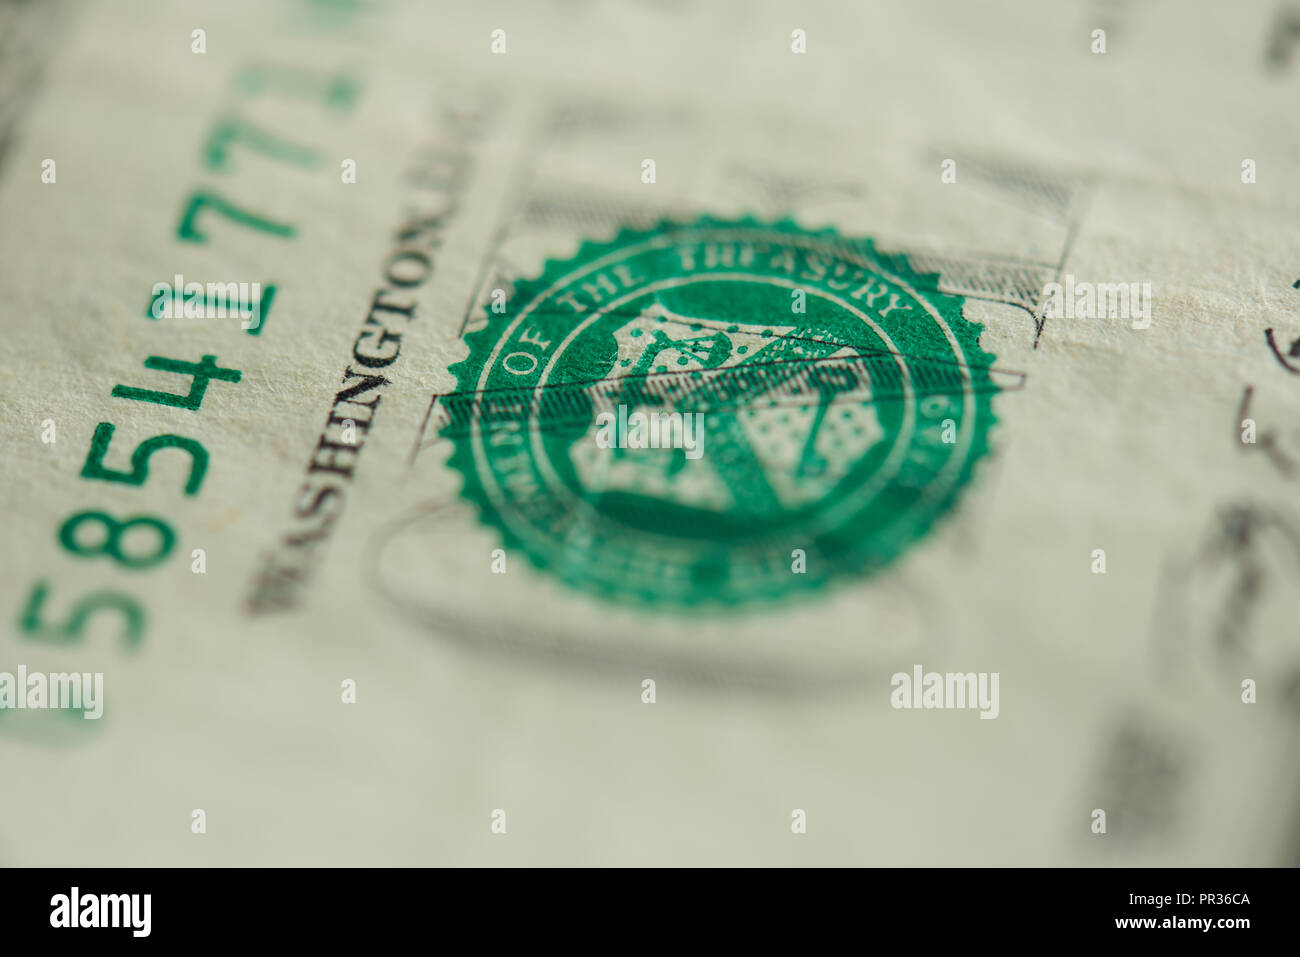 Green Stamp On One Dollar Bill Close Up View